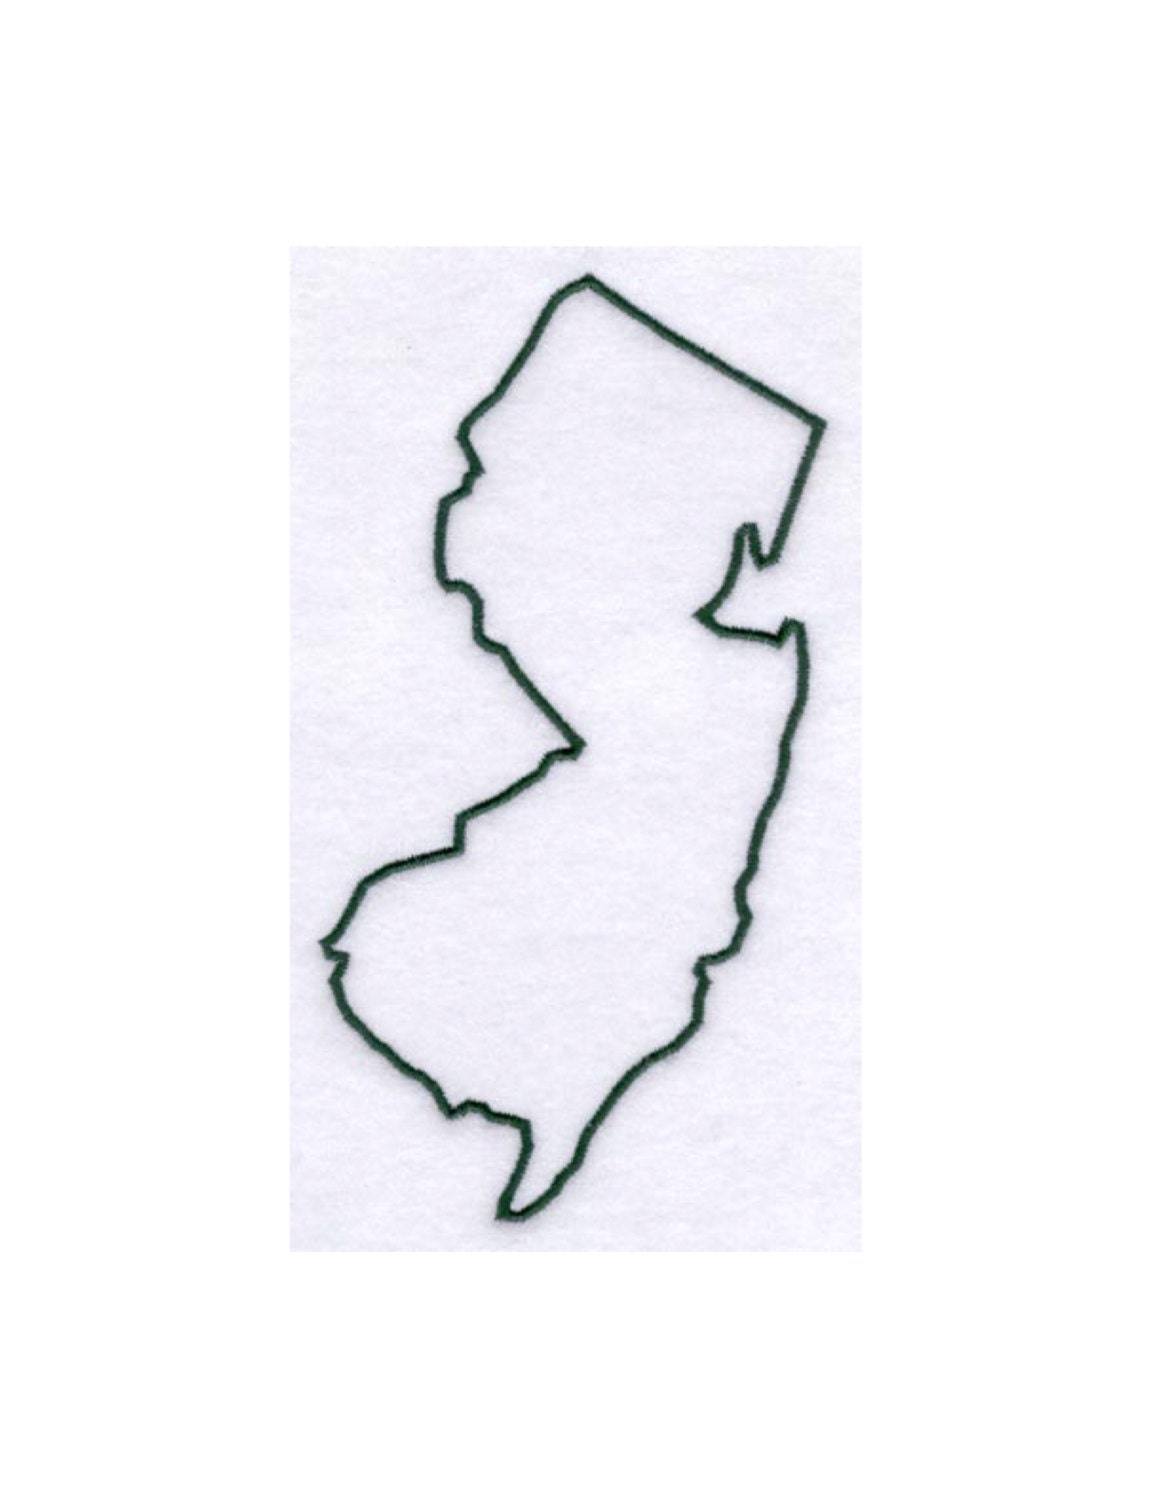 New Jersey Stencil Made From 4 Ply Mat By Woodburnsnewengland